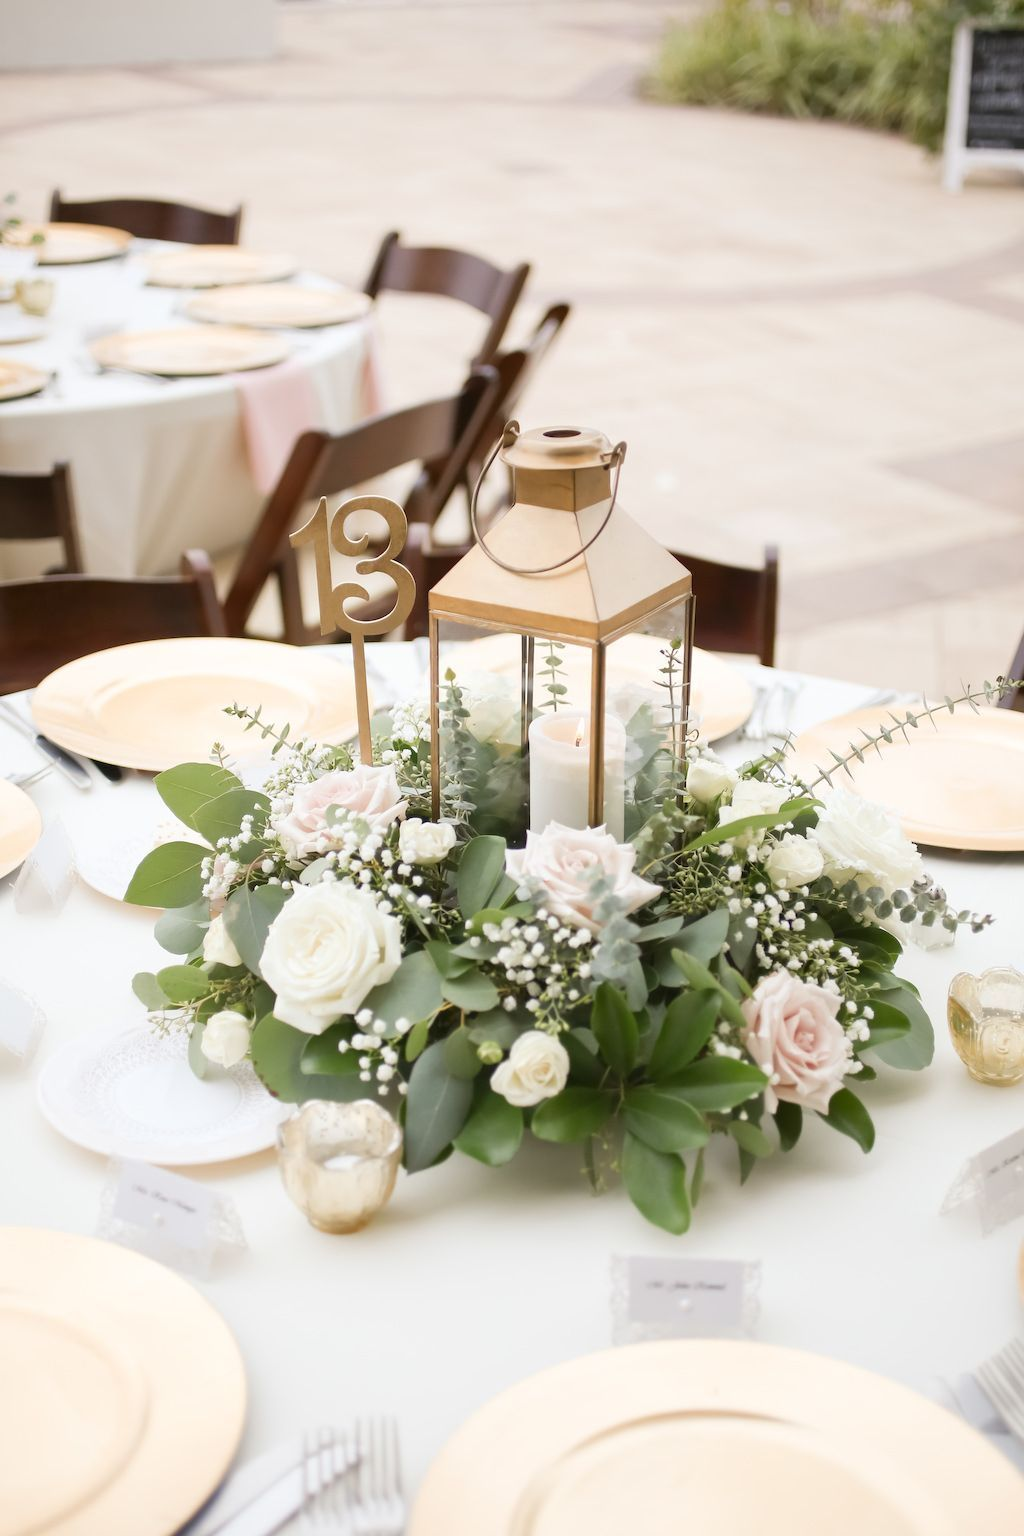 Rustic Nautical Outdoor Wedding Reception Round Table Decor With Gold Hurricane Lantern And Low White Rose Greenery Centerpiece Chargers Tea